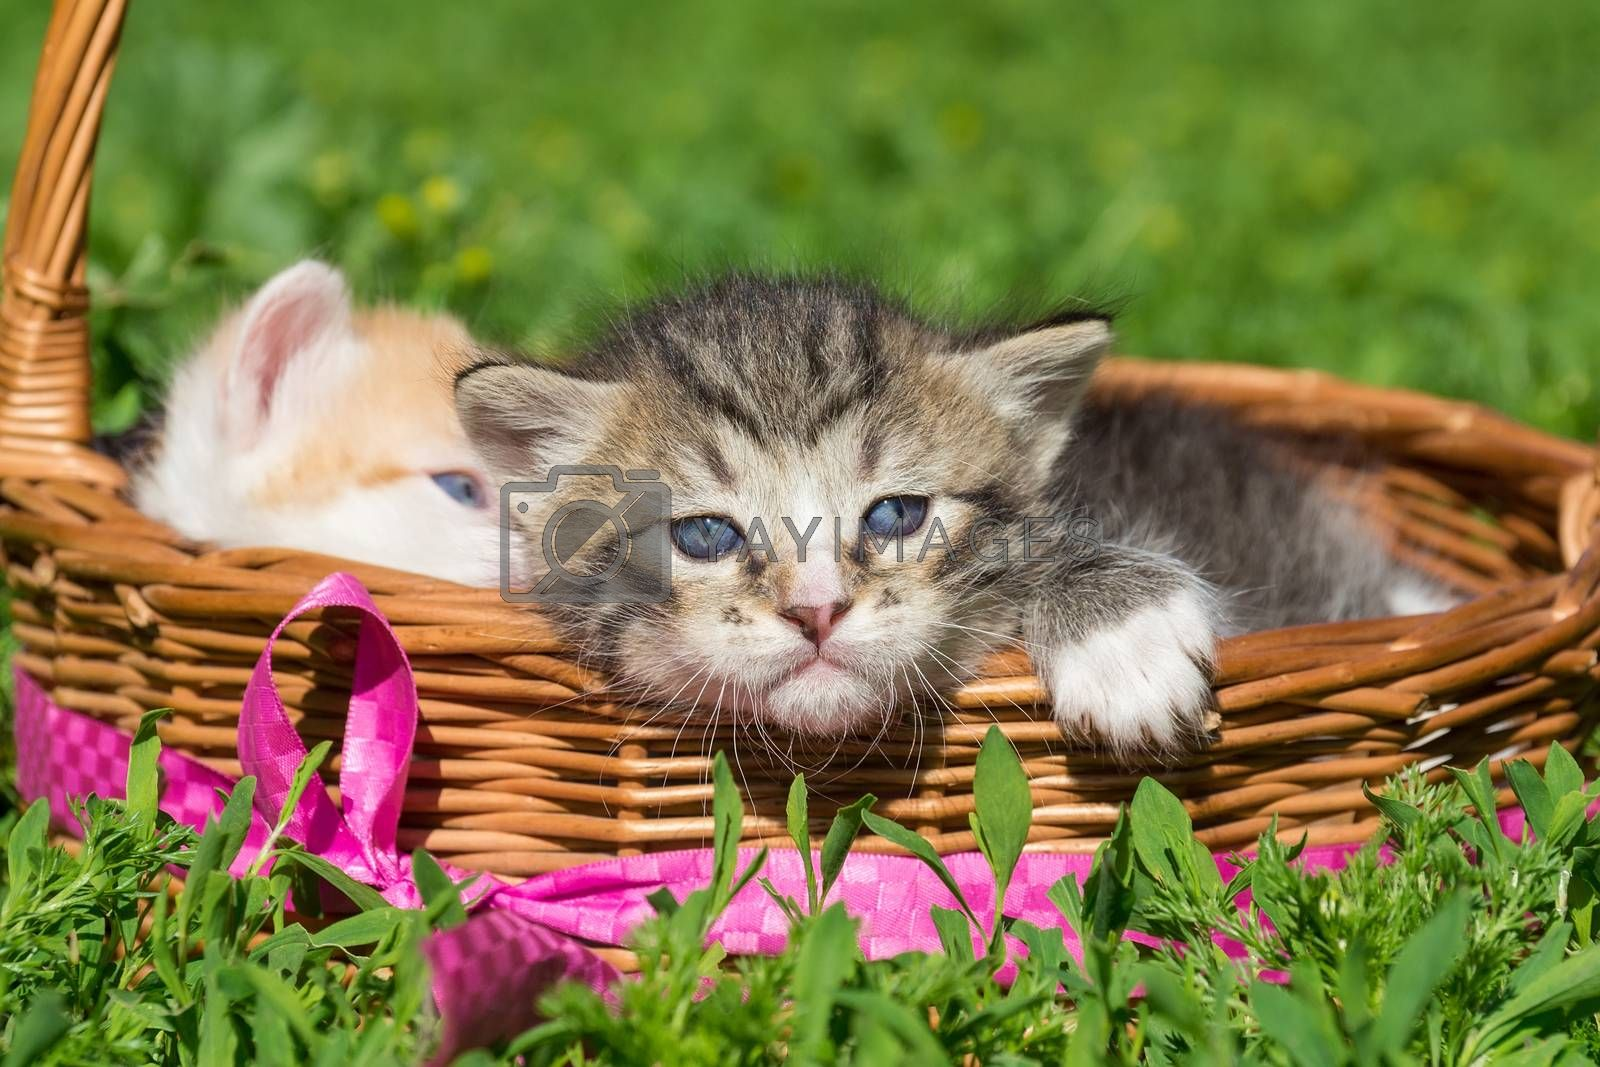 A small gray kitten is sitting in a basket